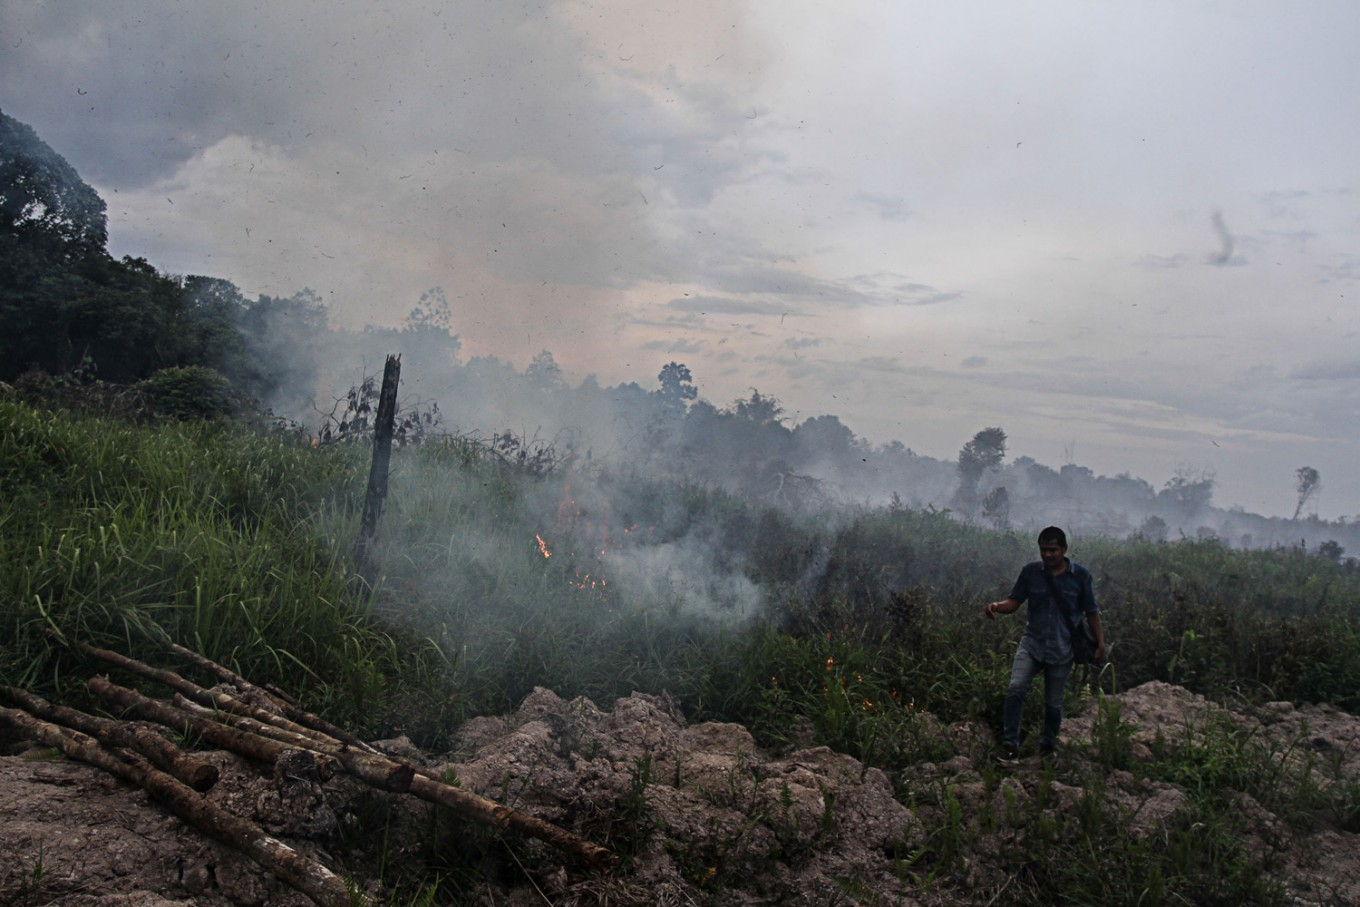 Indonesia praised for curbing haze, but more challenges ahead